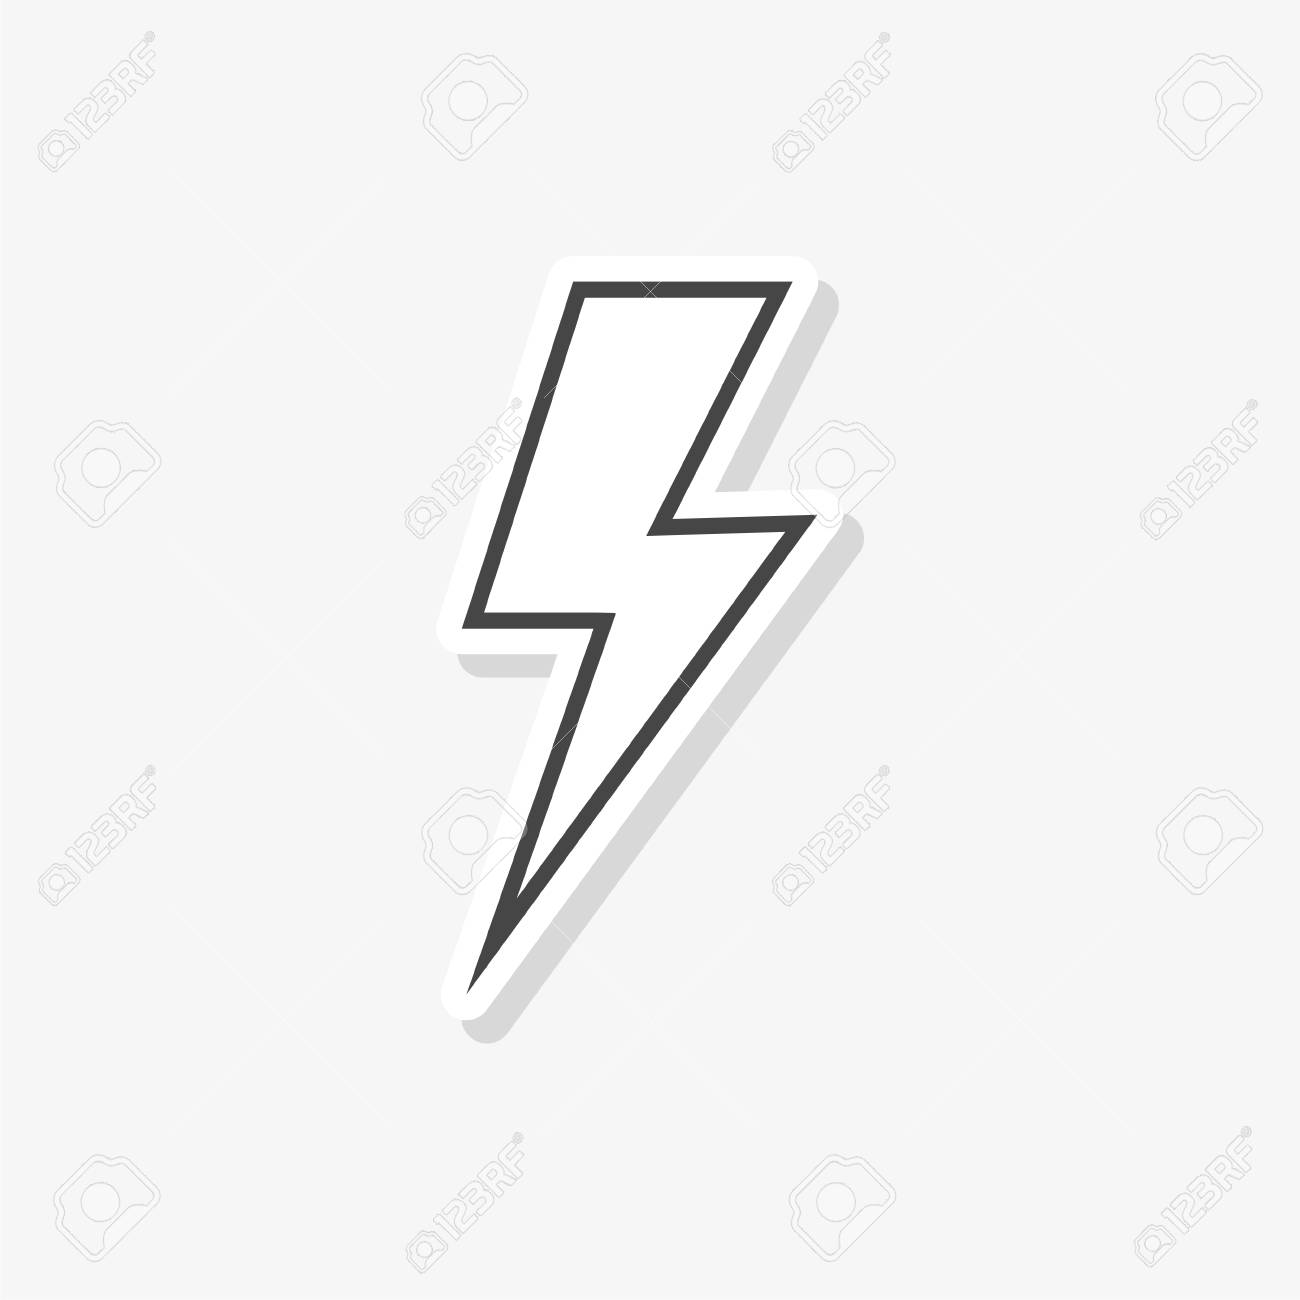 lightning bolt sticker simple vector icon royalty free cliparts vectors and stock illustration image 124084431 123rf com